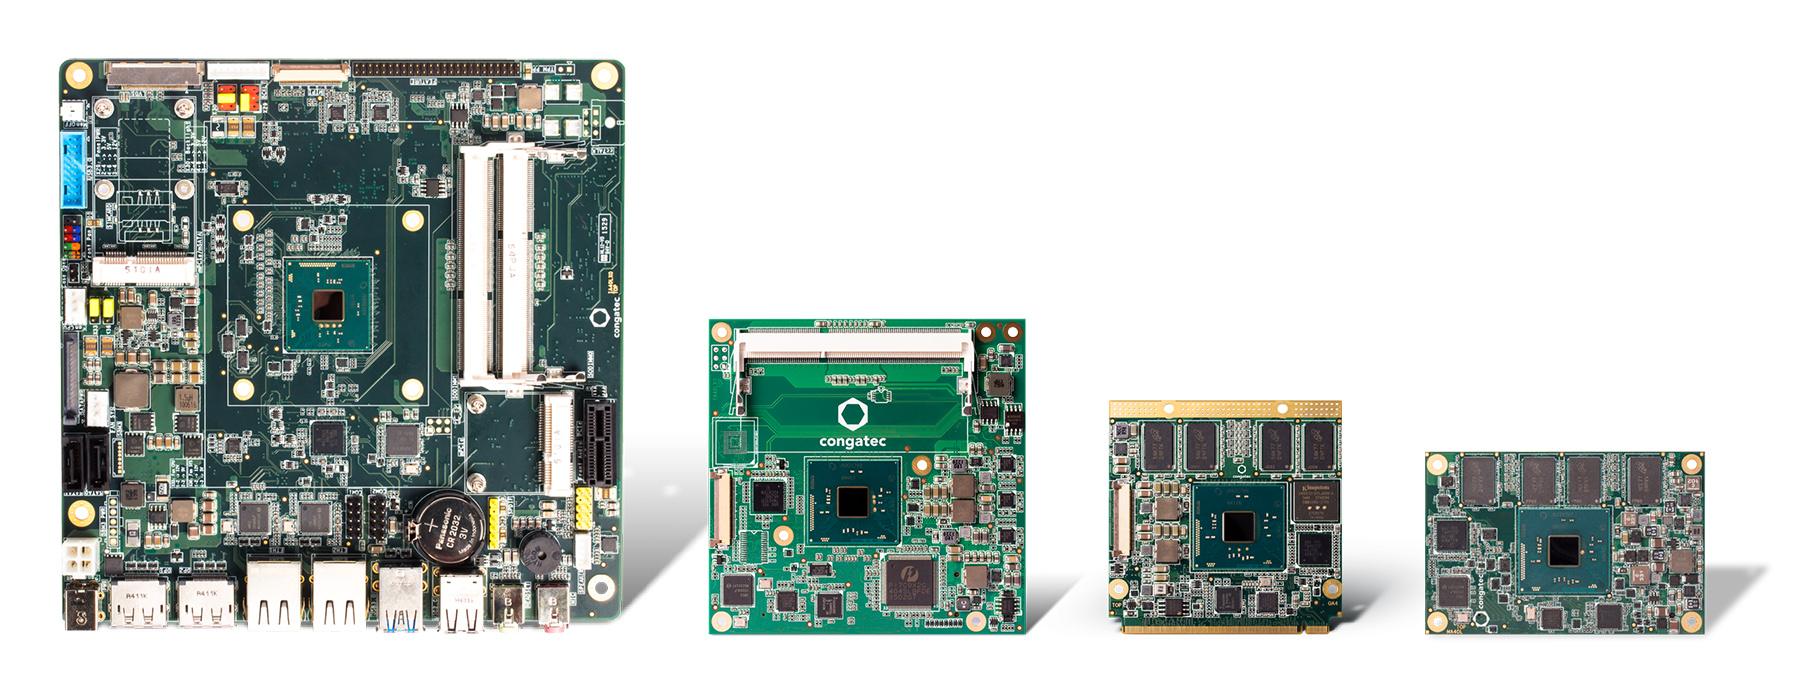 congatec XA4 product family Intel Atom